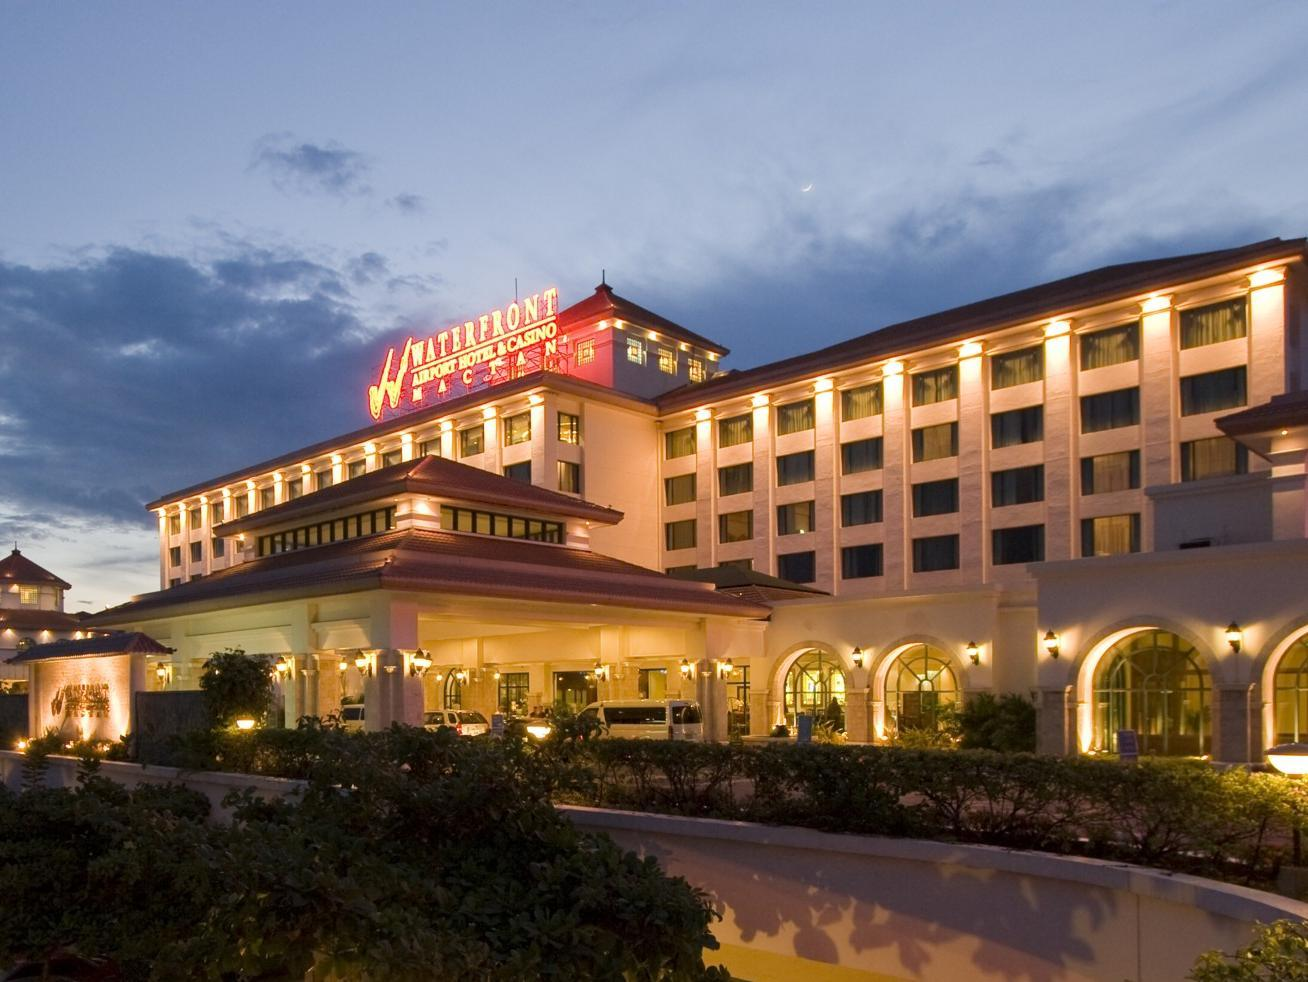 Waterfront Airport Hotel and Casino Cebu - Hotel Facade